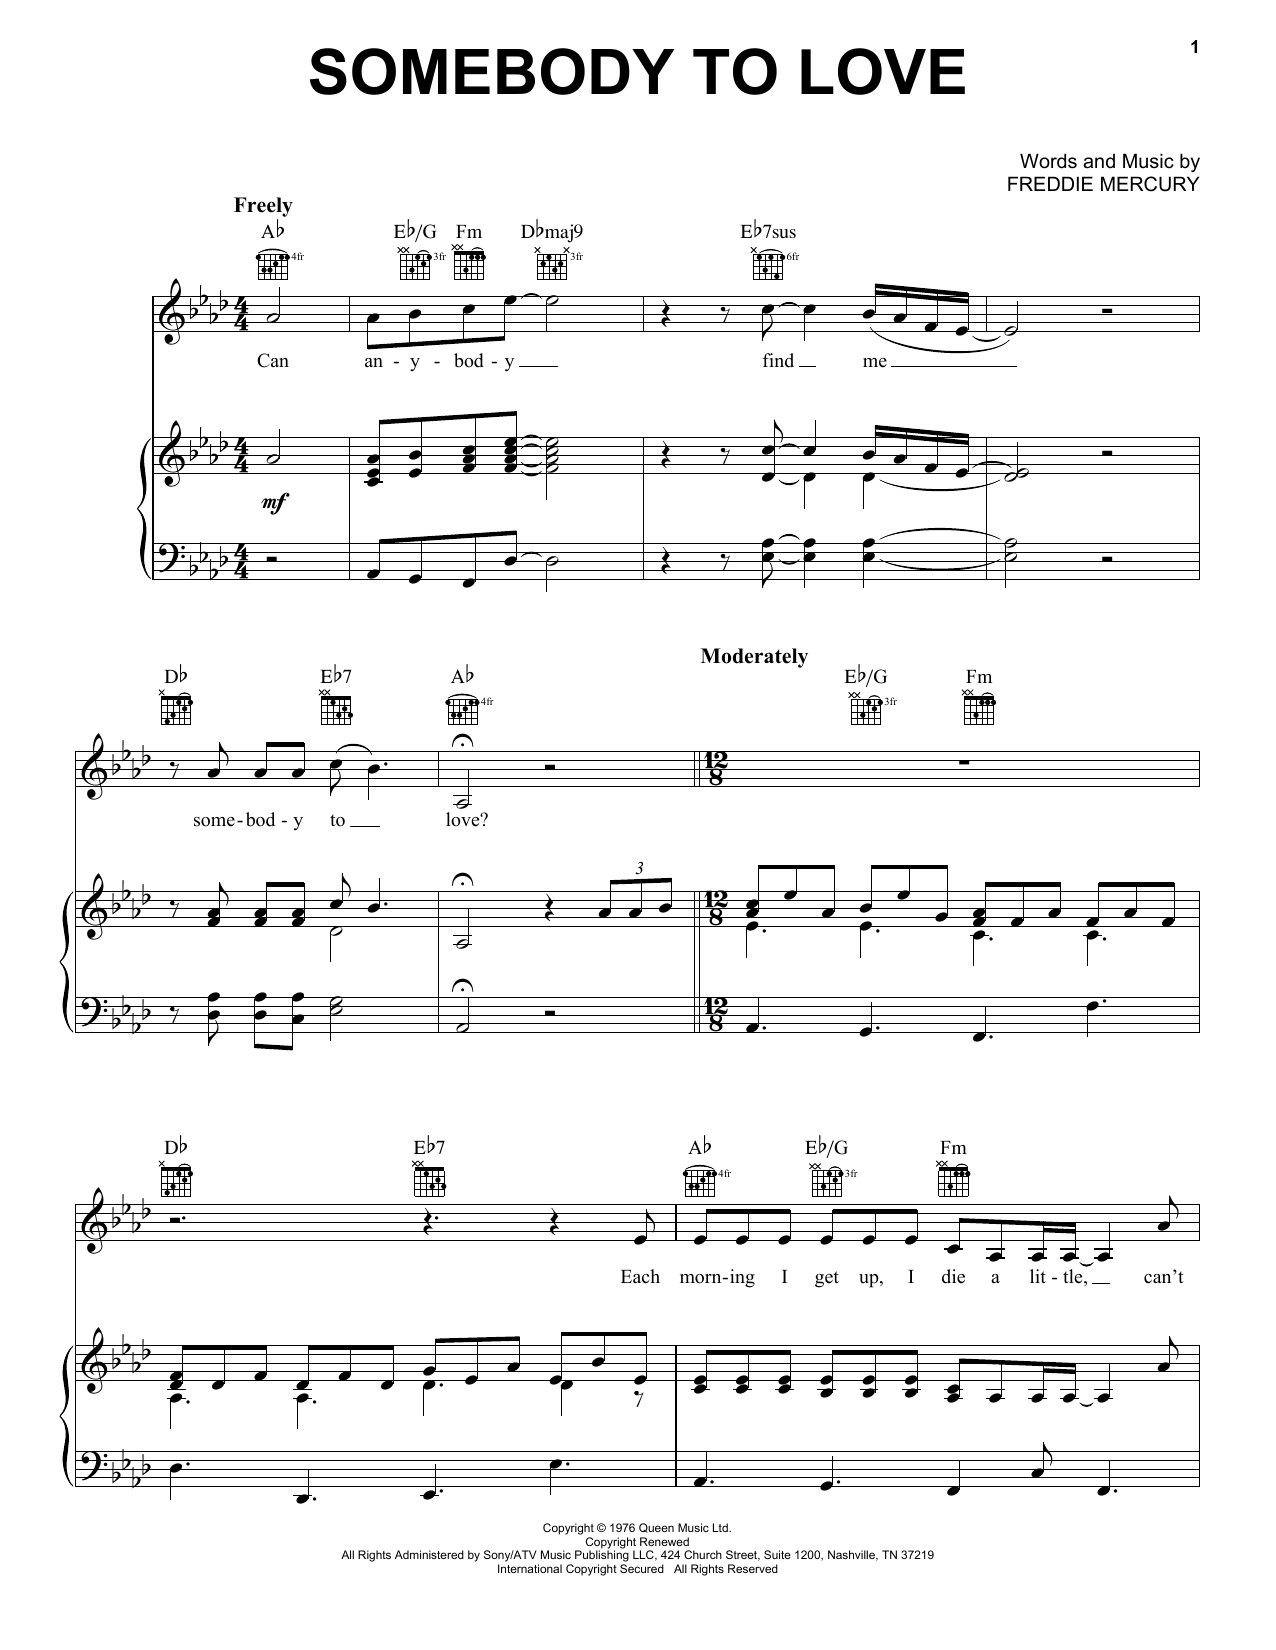 Queen Somebody To Love sheet music notes and chords. Download Printable PDF.